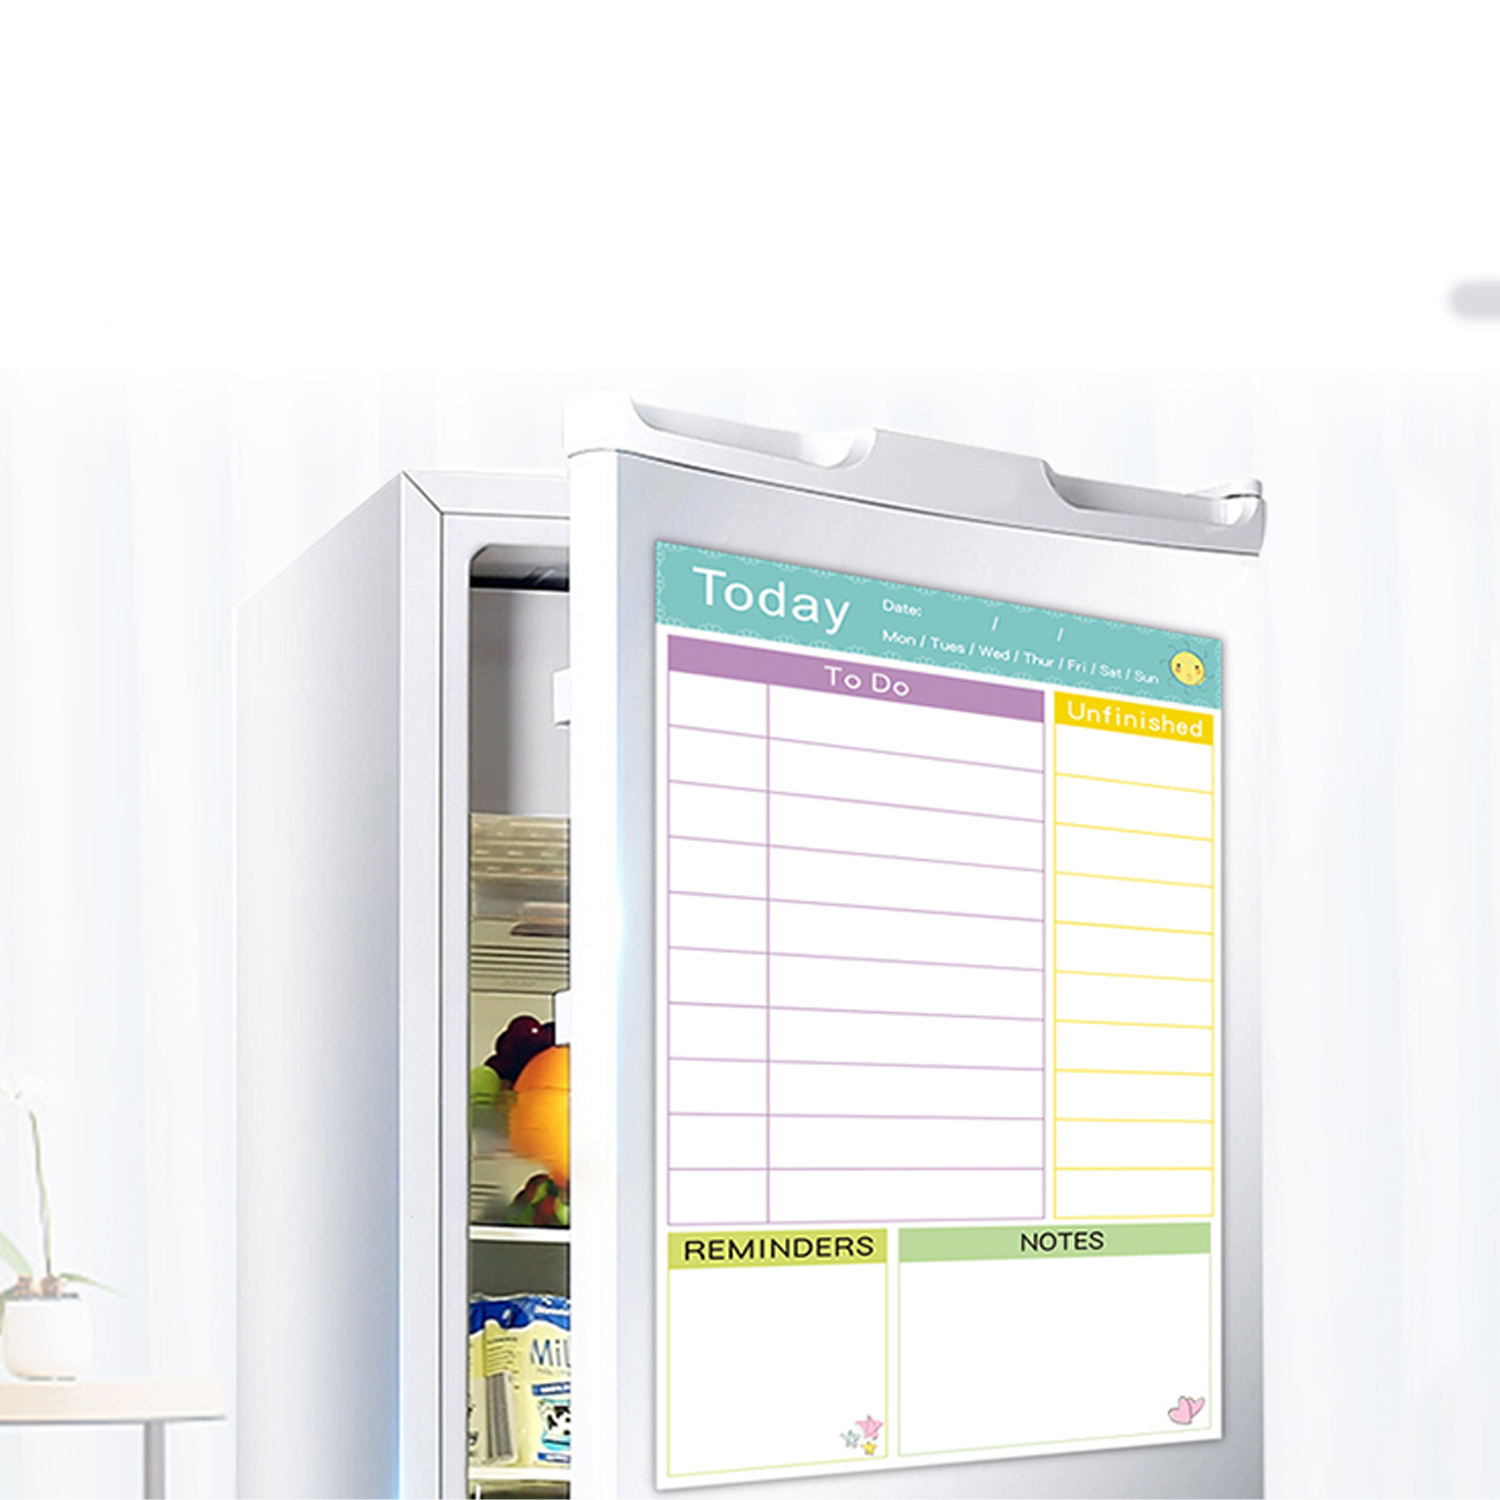 50x30cm Reusable Magnetic Dry Erase Daily Planner Whiteboard Recording Board With Marker Eraser For Kichen Fridge Refrigerator